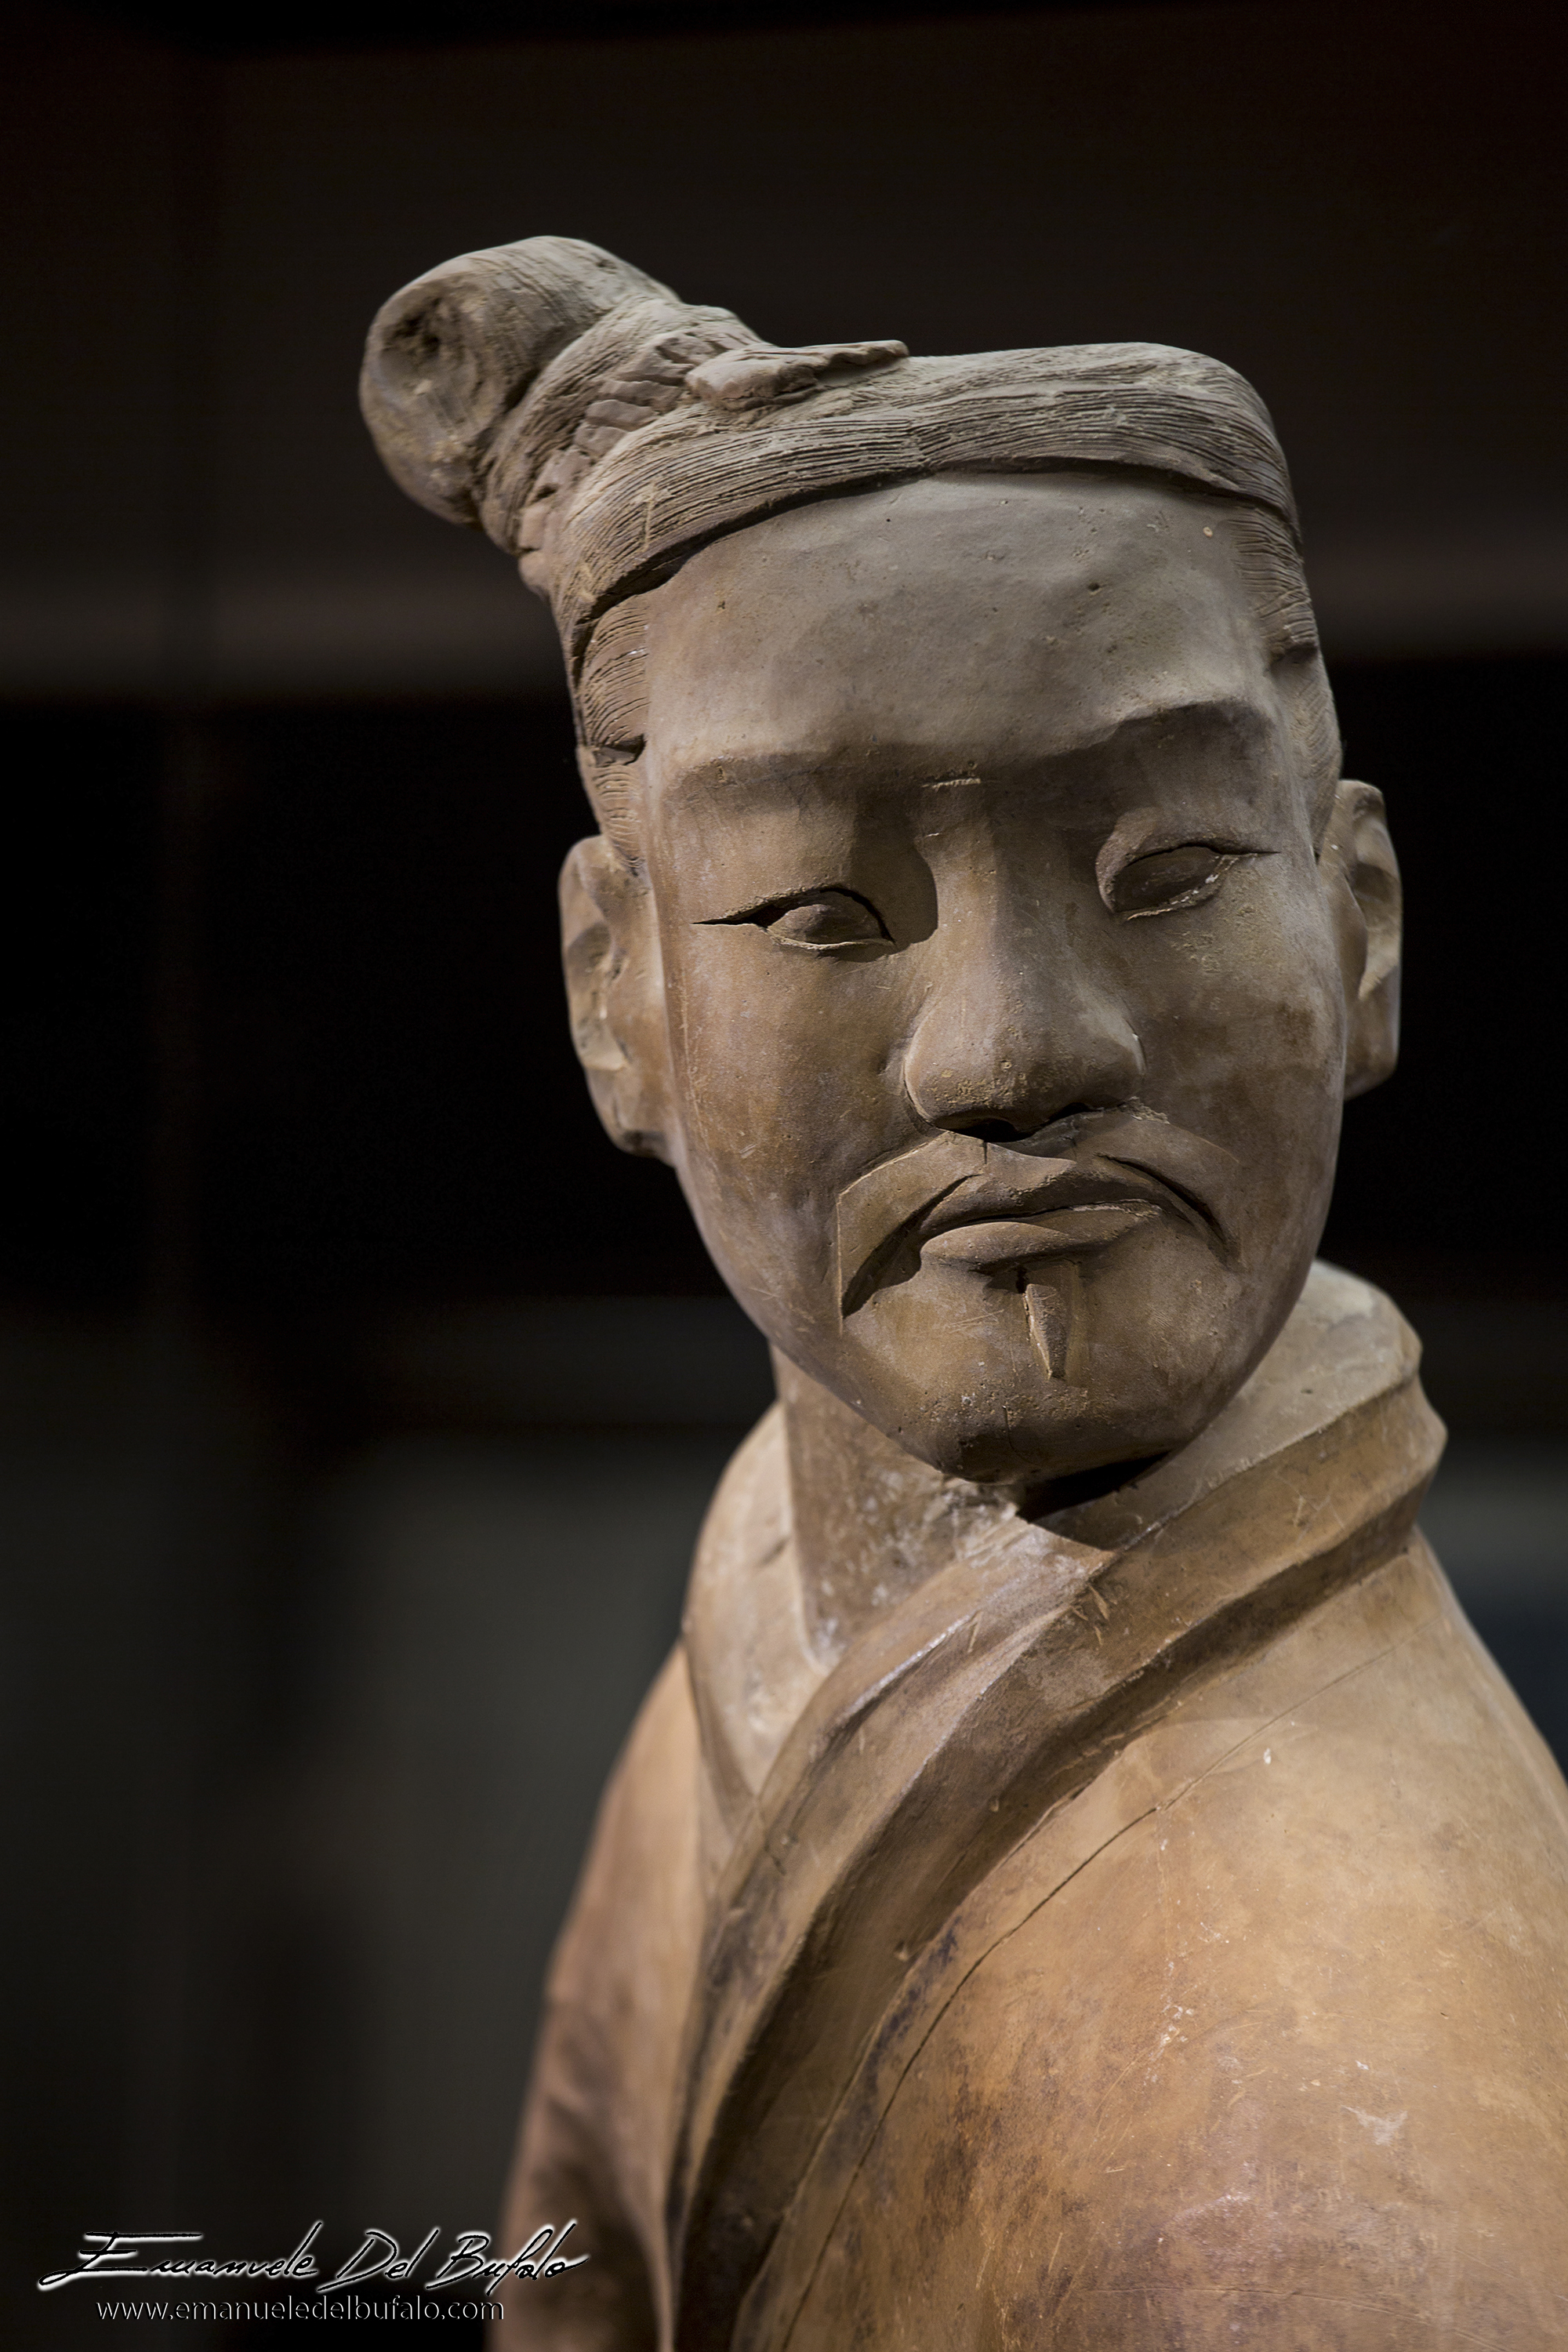 www.emanueledelbufalo.com #china #xian #warrior #statue #terracotta_warriors #portrait #history #une